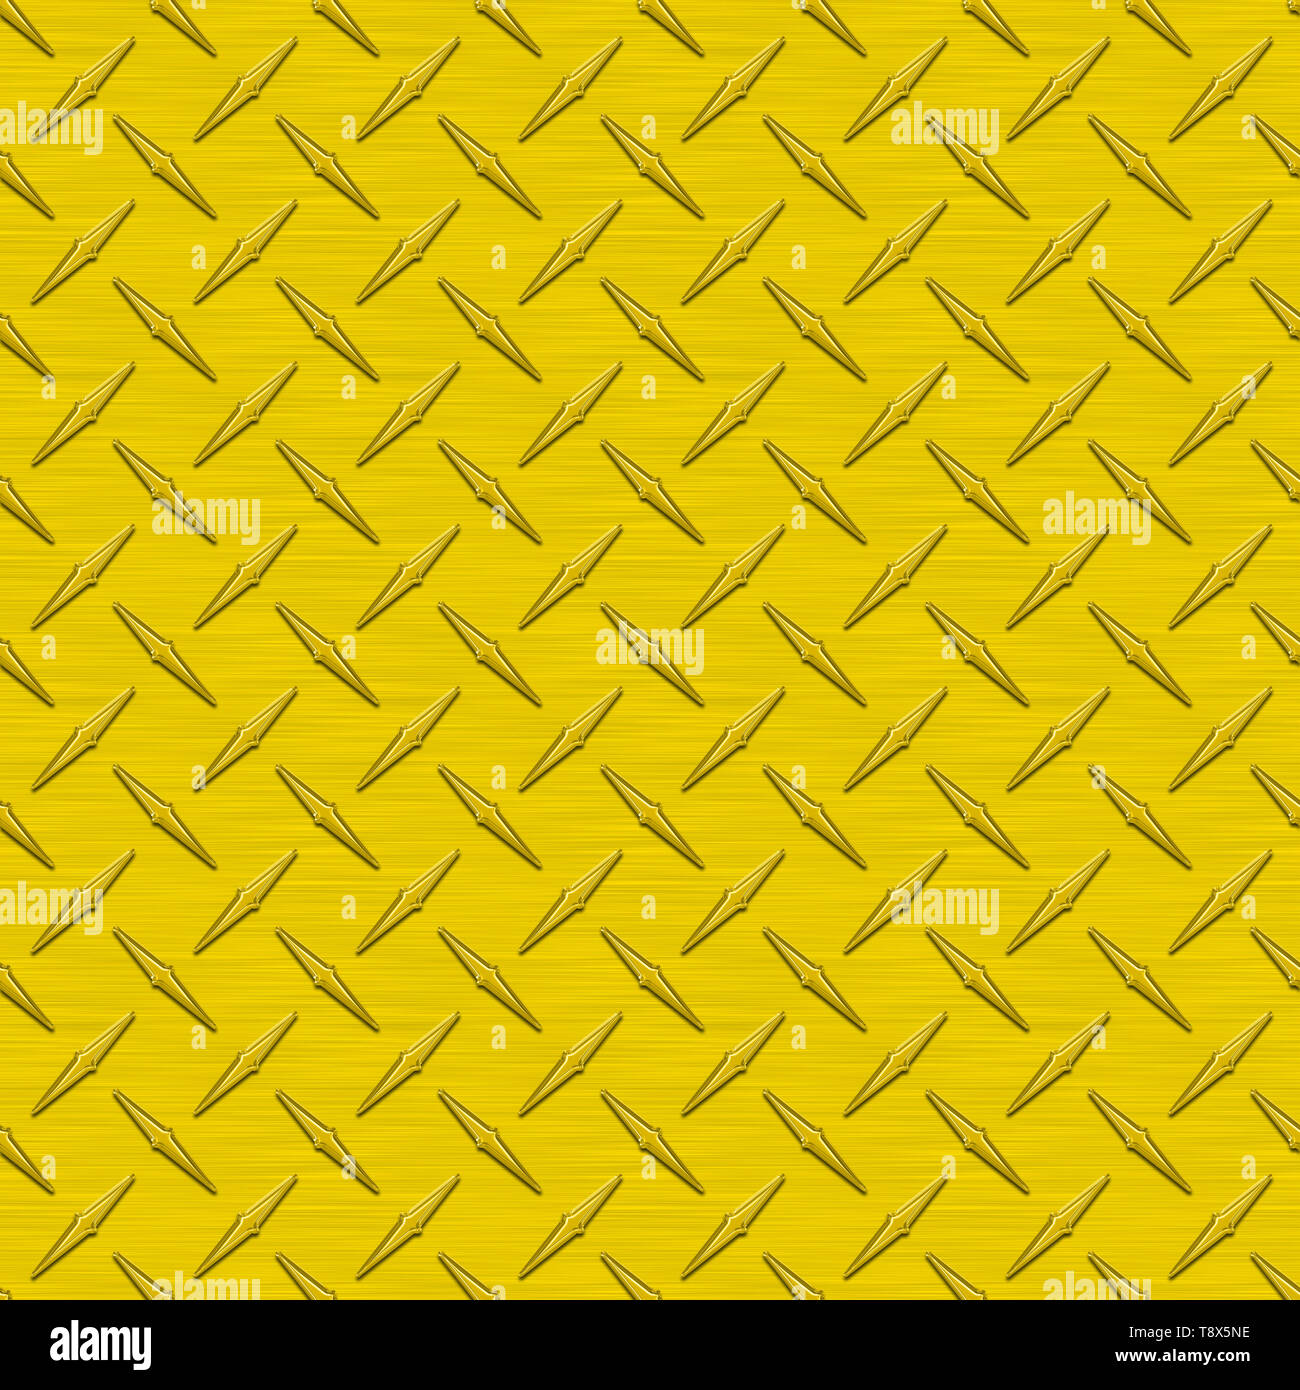 Sunflower Yellow Diamond Plate Metal Seamless Texture Tile - Stock Image